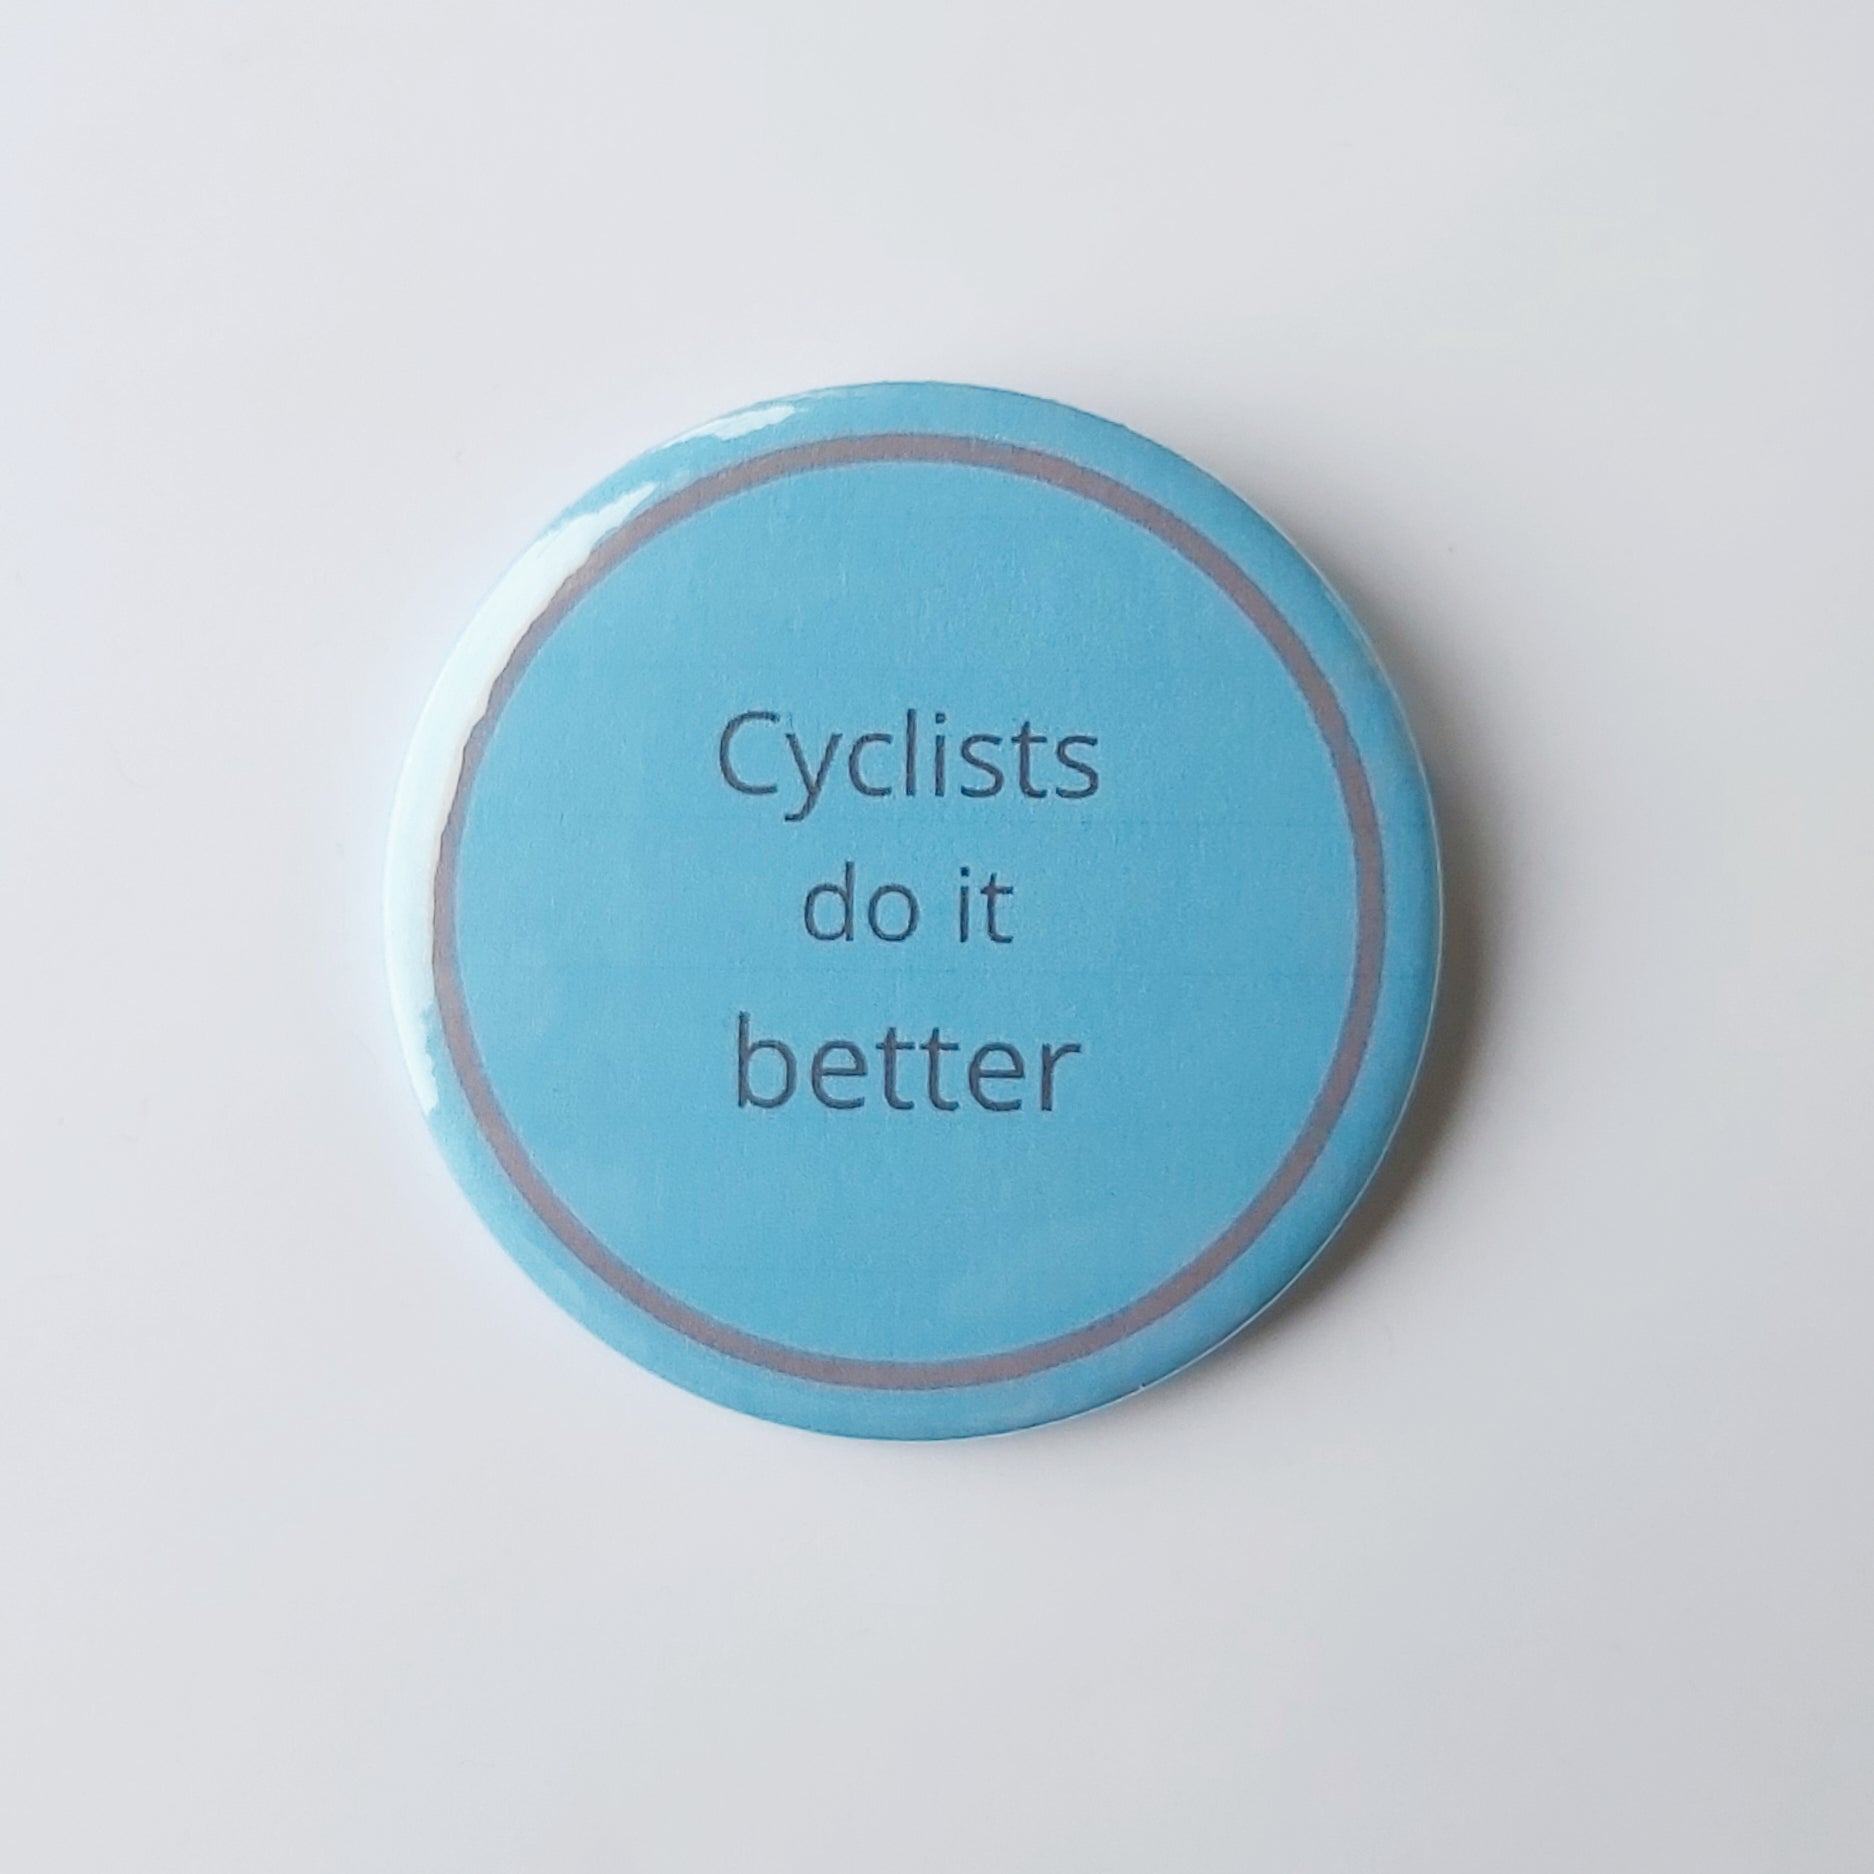 Cyclists do it better